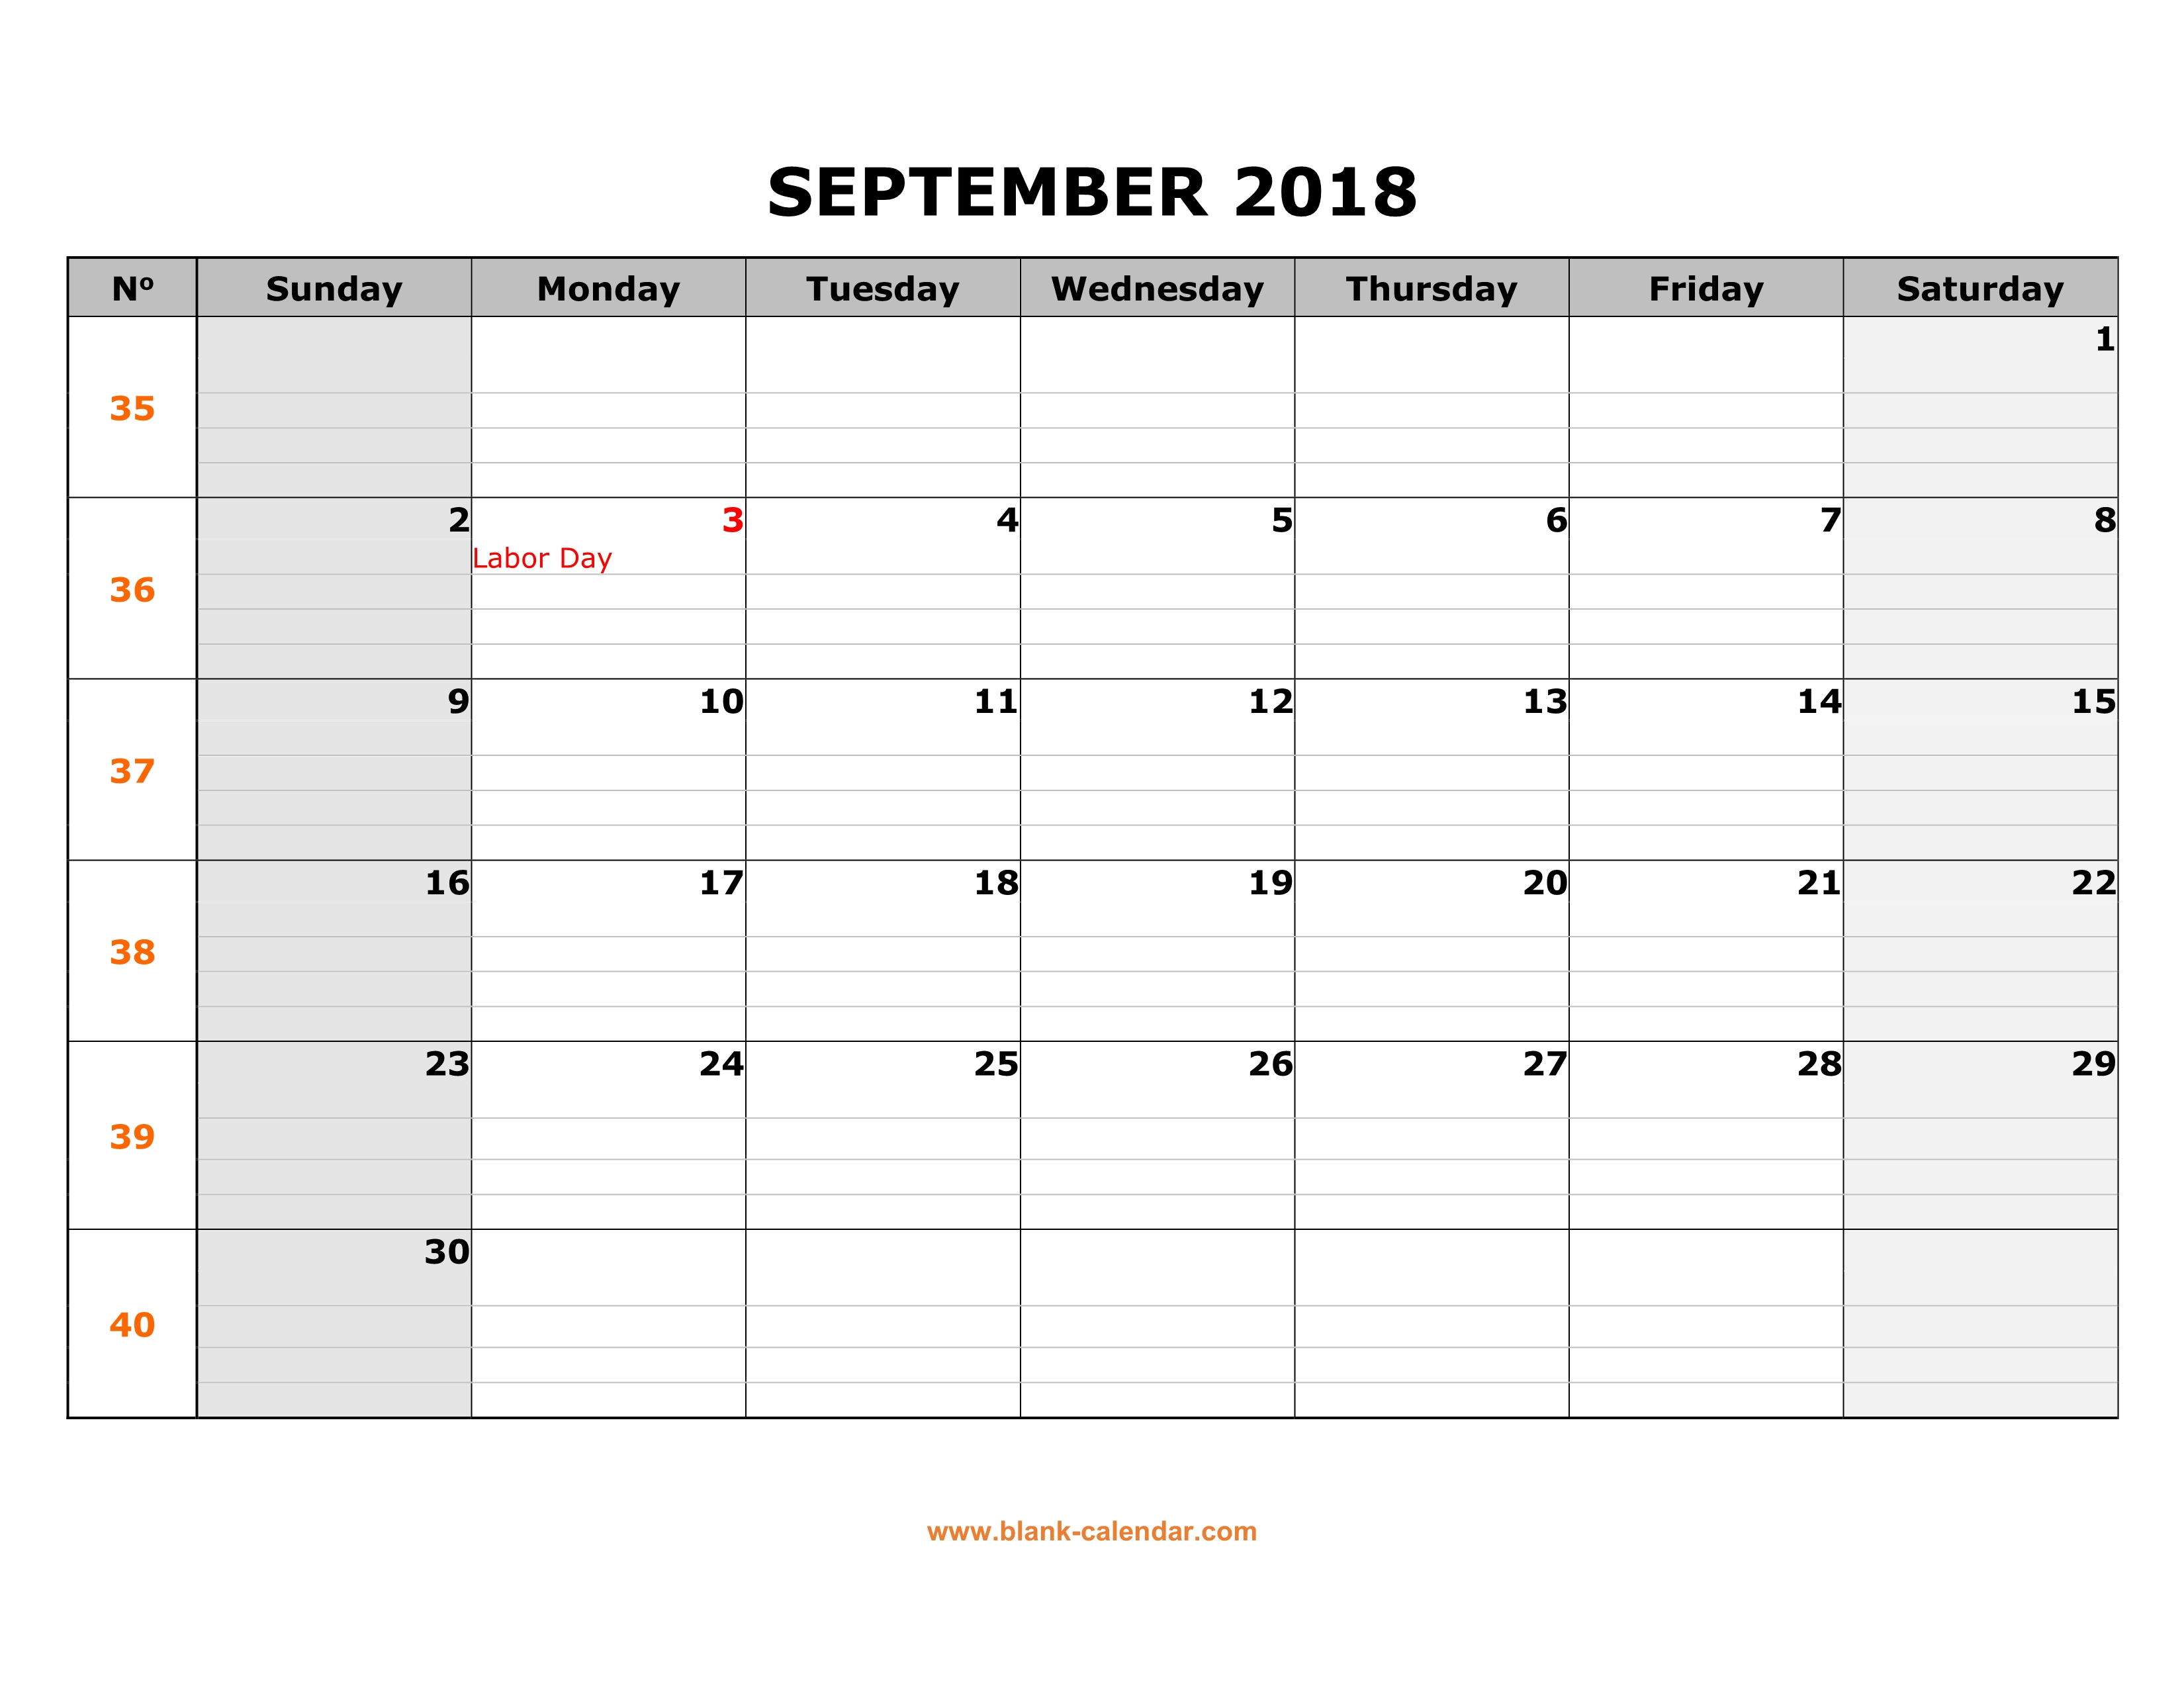 free download printable september 2018 calendar large box grid space for notes